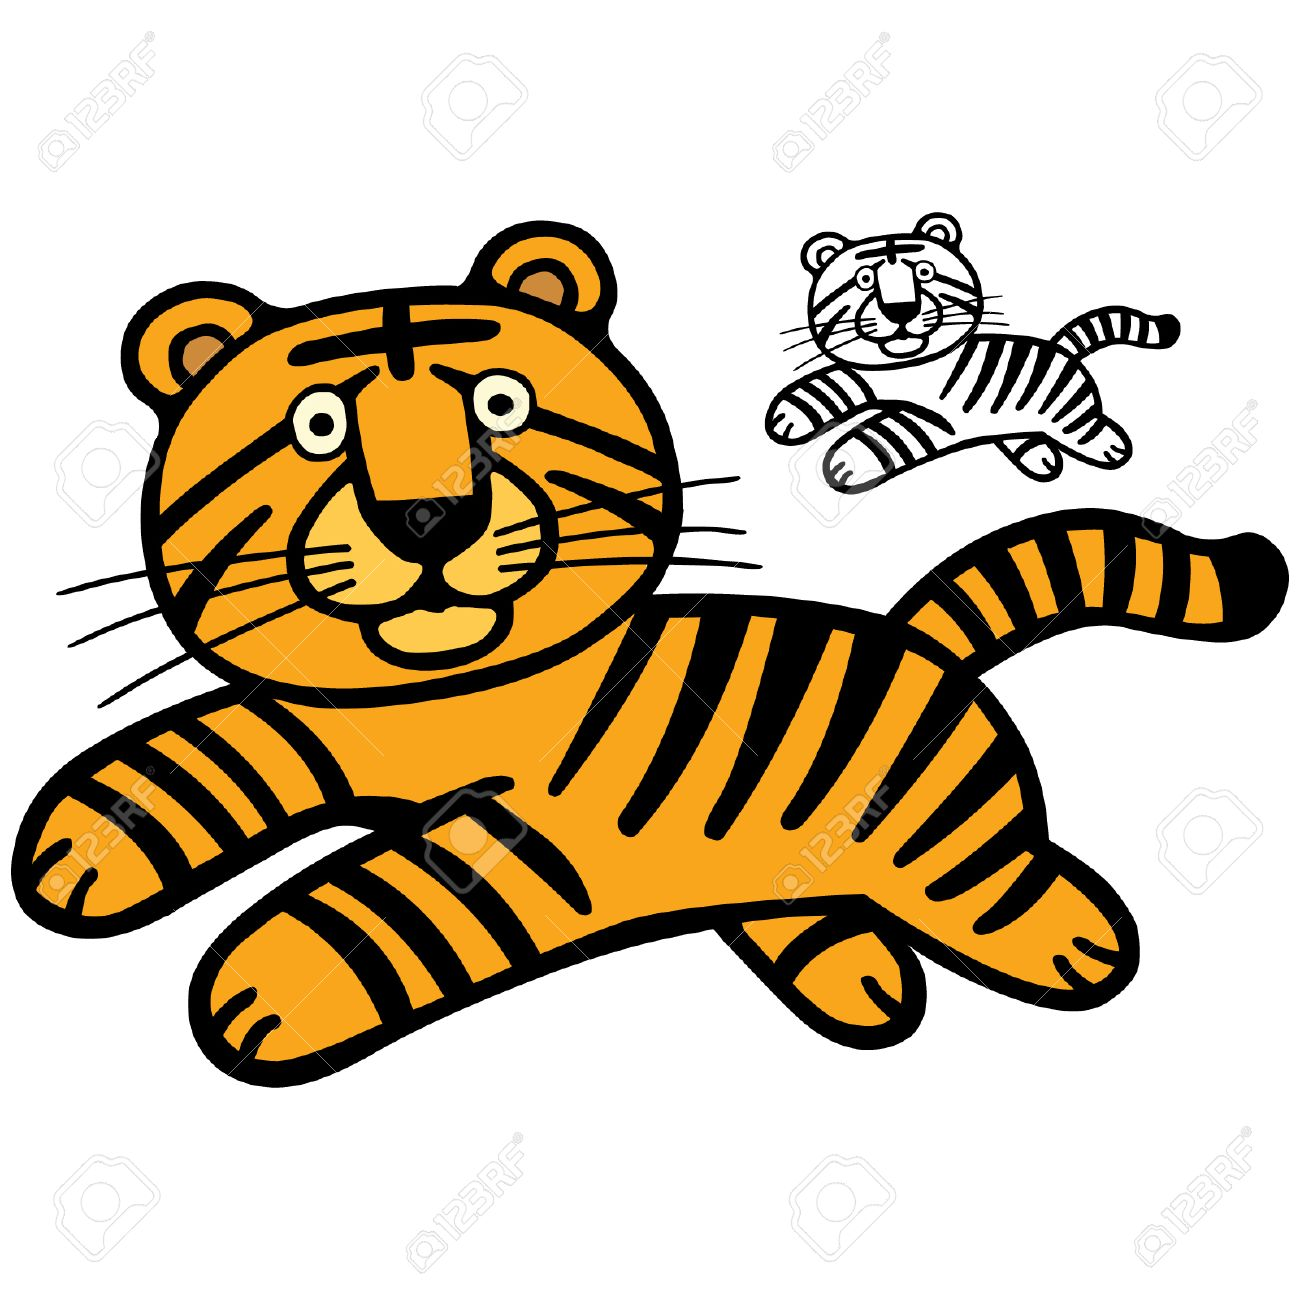 A cute tiger cartoon illustration. Stock Vector - 5933794